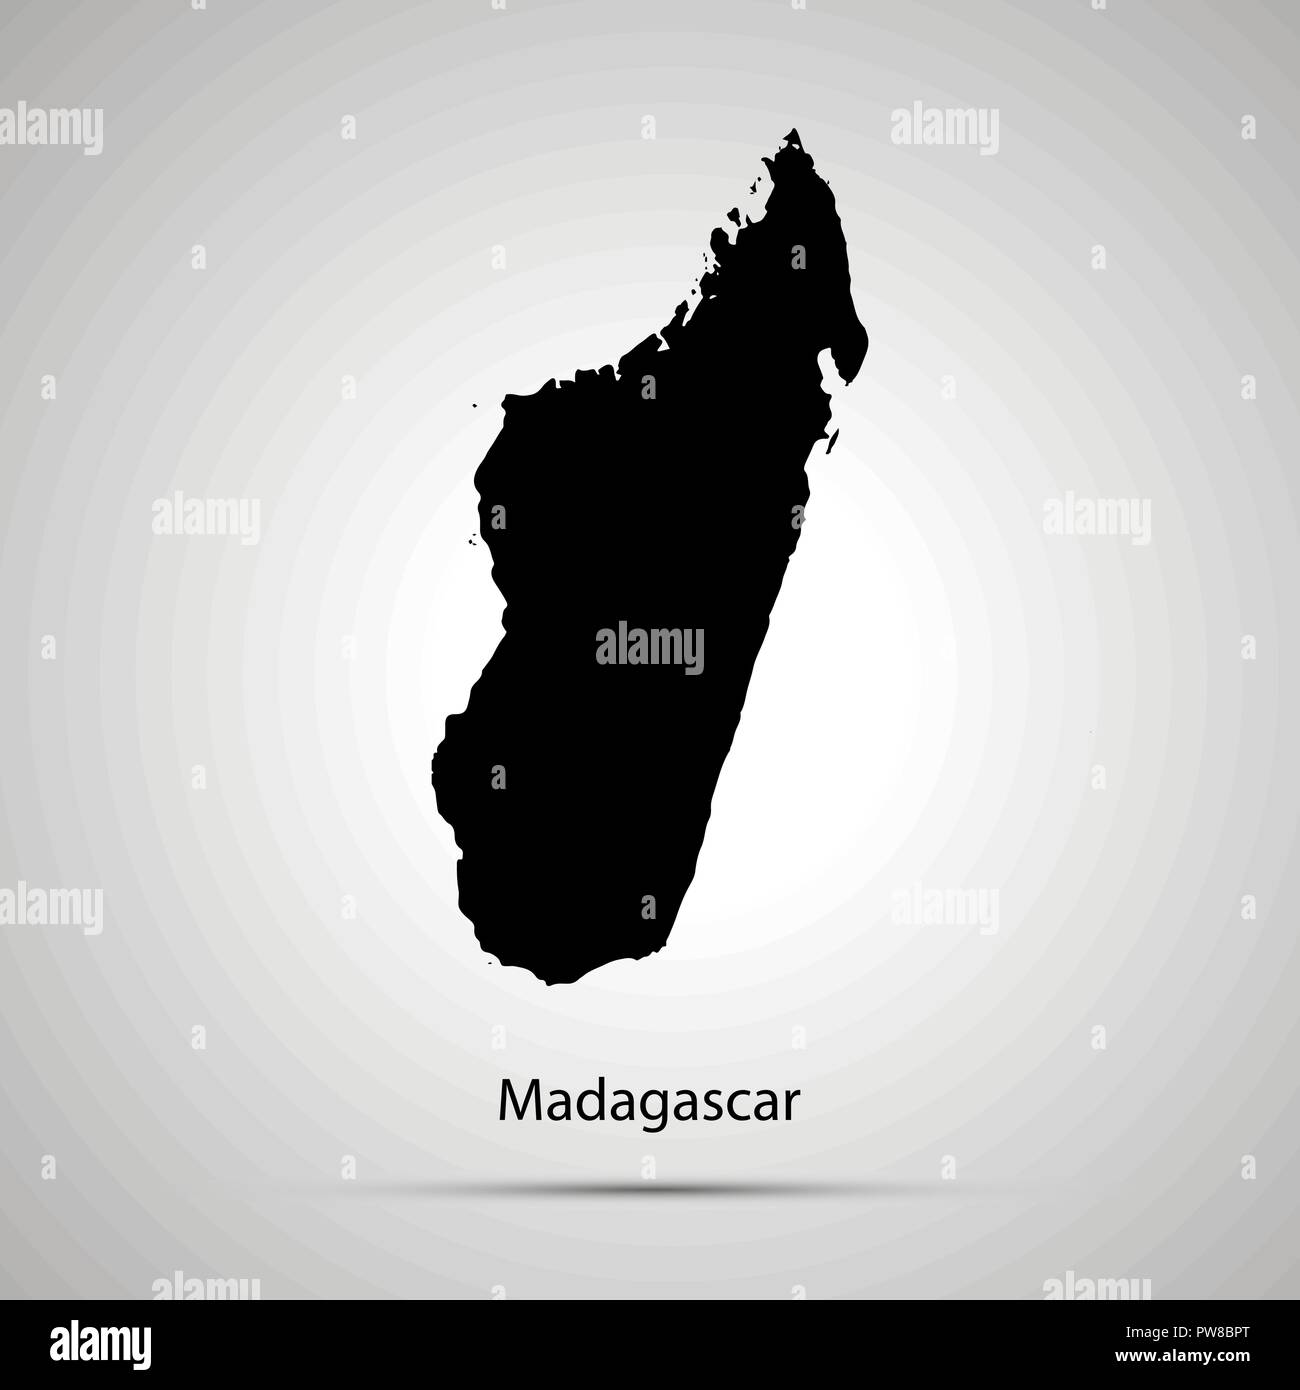 Madagascar Carte Simple.Madagascar Carte Pays Simple Silhouette Noir Sur Gris